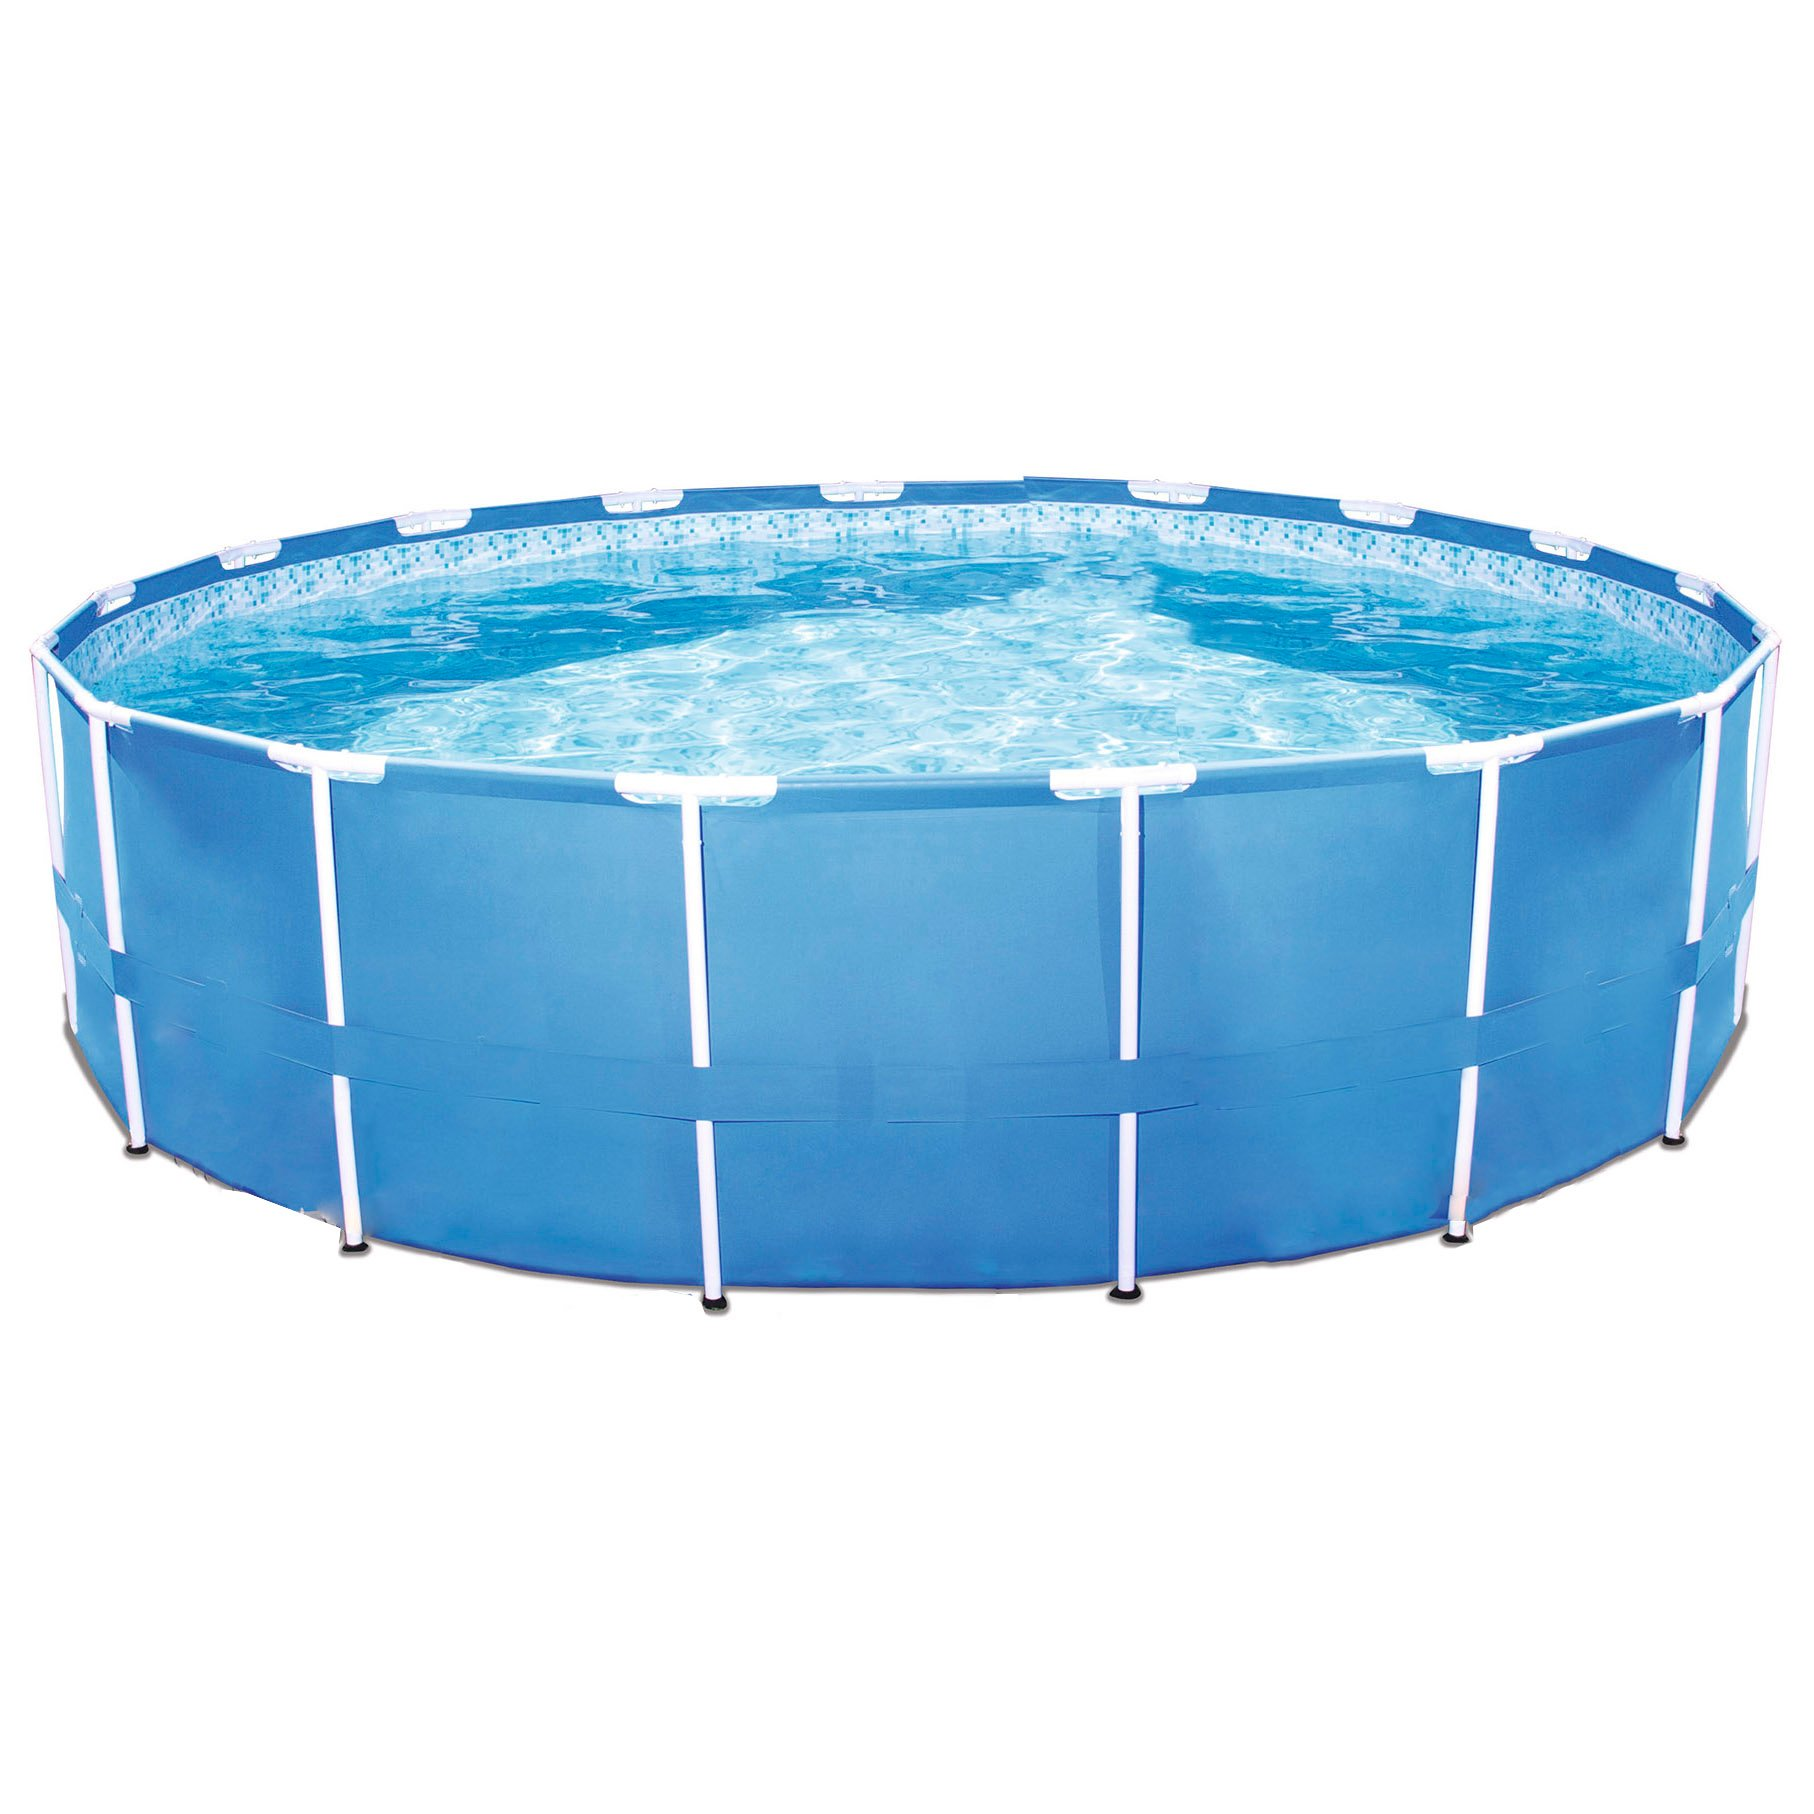 Bestway steel pro 12 39 x 30 frame above ground pool set - Bestway steel frame swimming pool ...